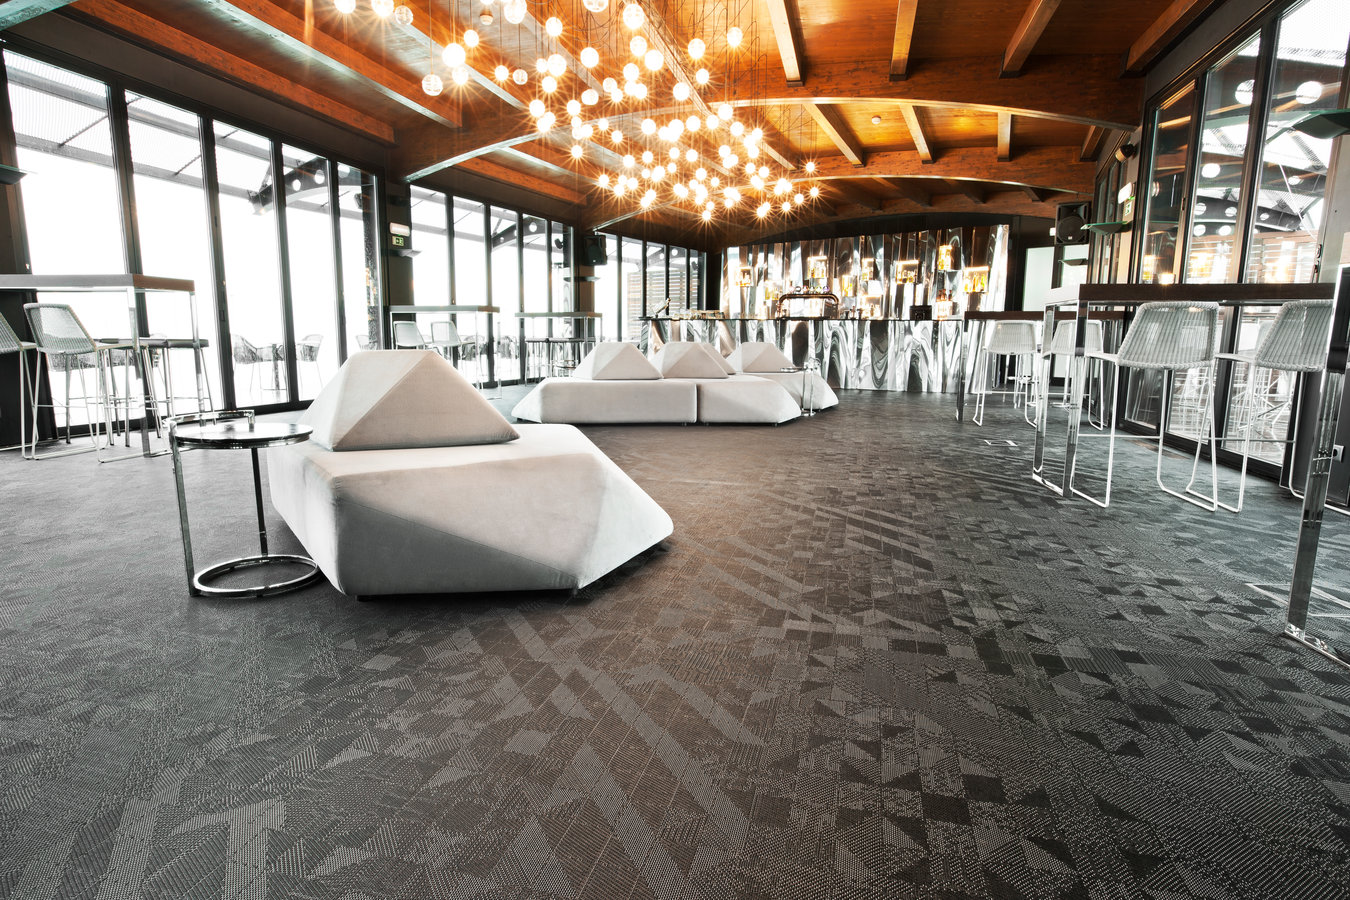 Tivoli Hotel In Lisbon Portugal Bolon Floors For Hotels Skybar Hotel Tivoli Oriente